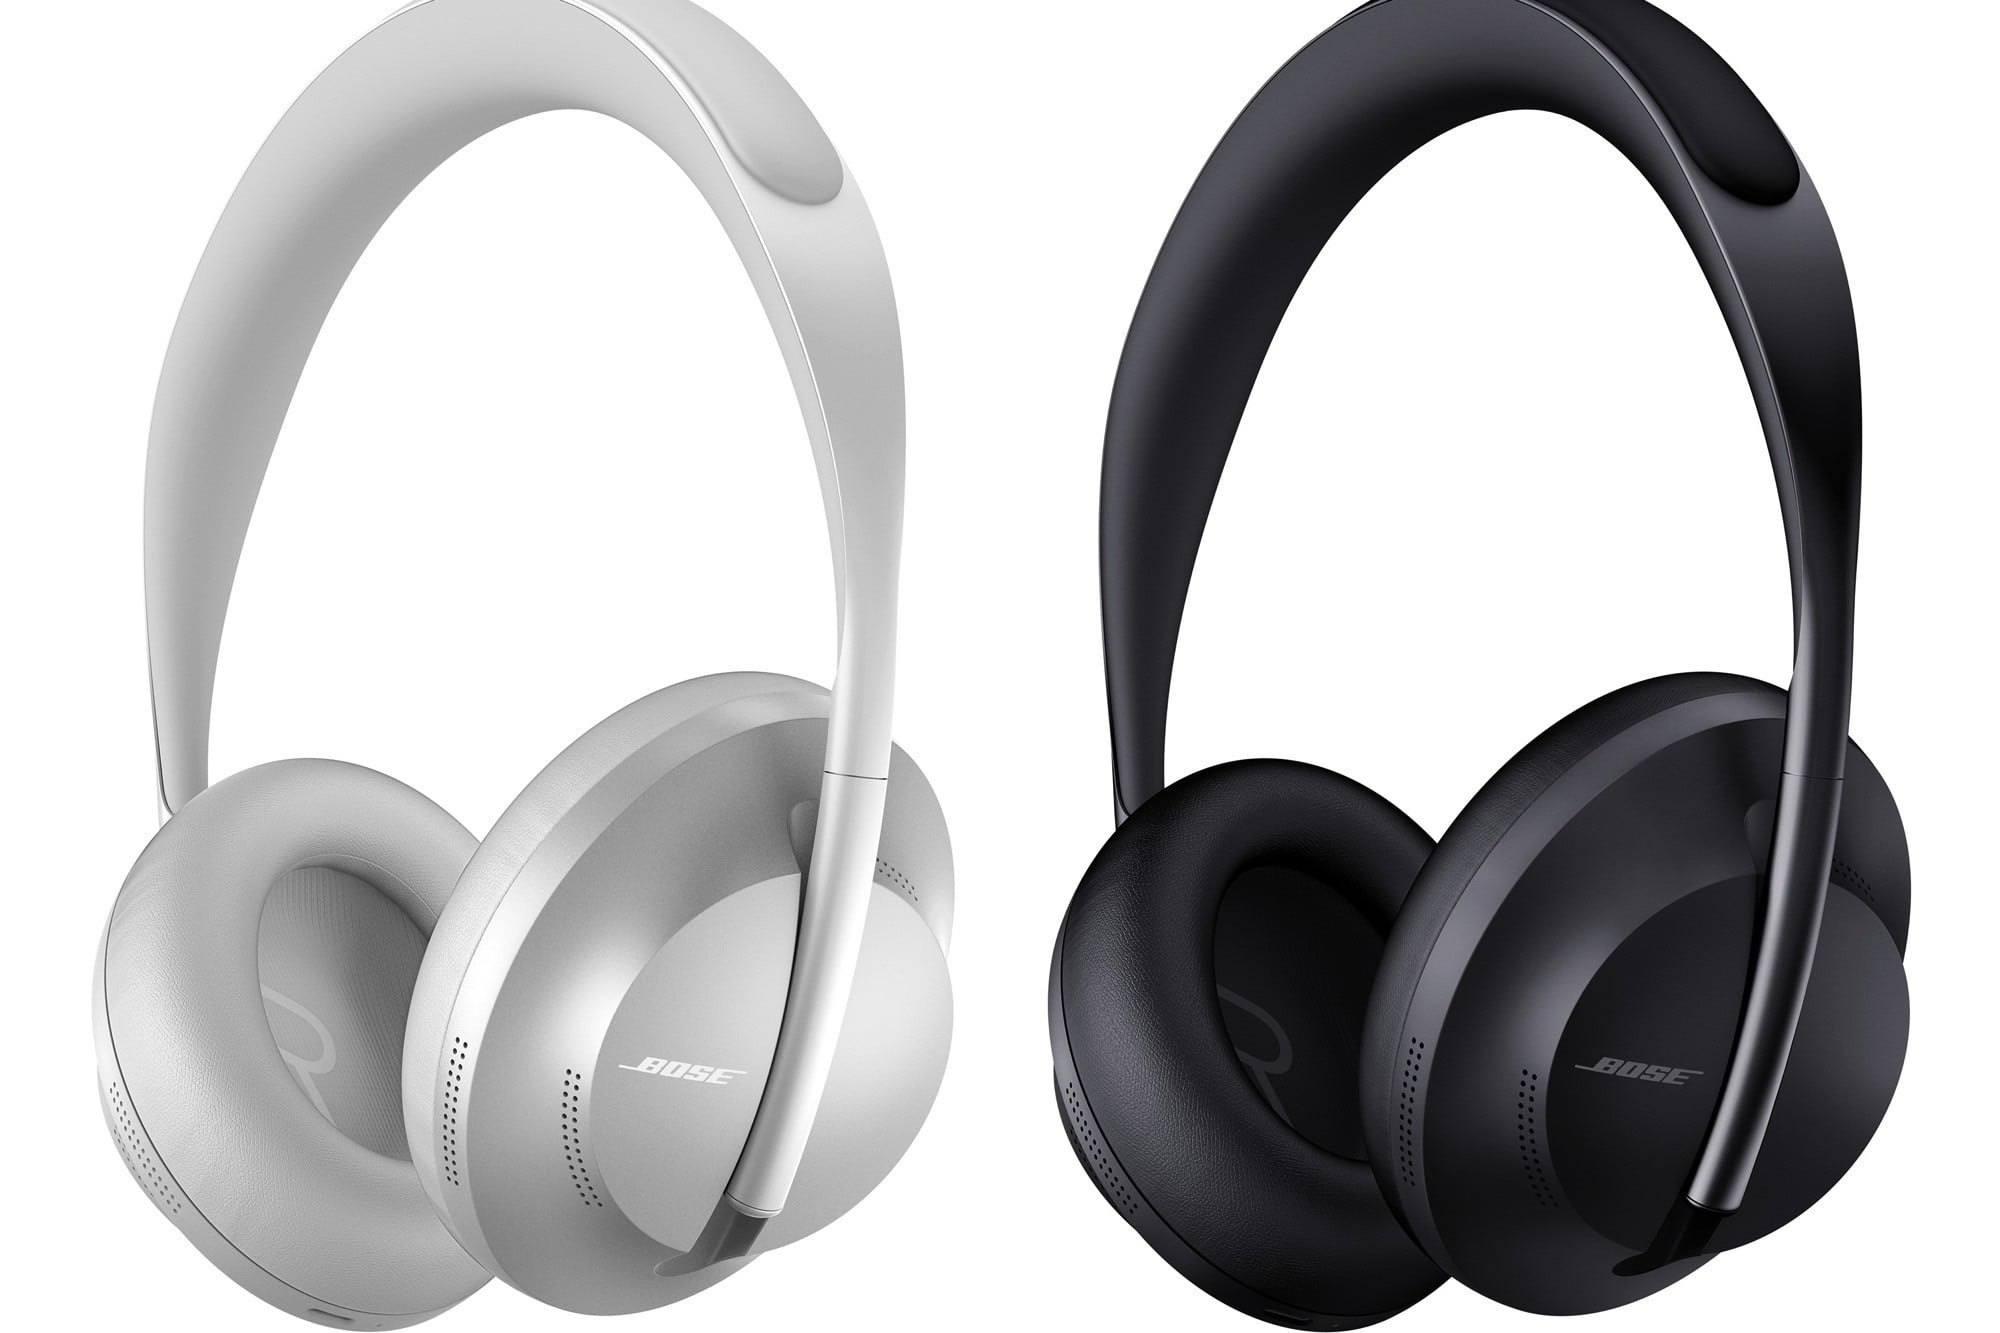 f66594edb08 Bose's New Headphones Make it Easier for Alexa to Hear You | Digital Trends